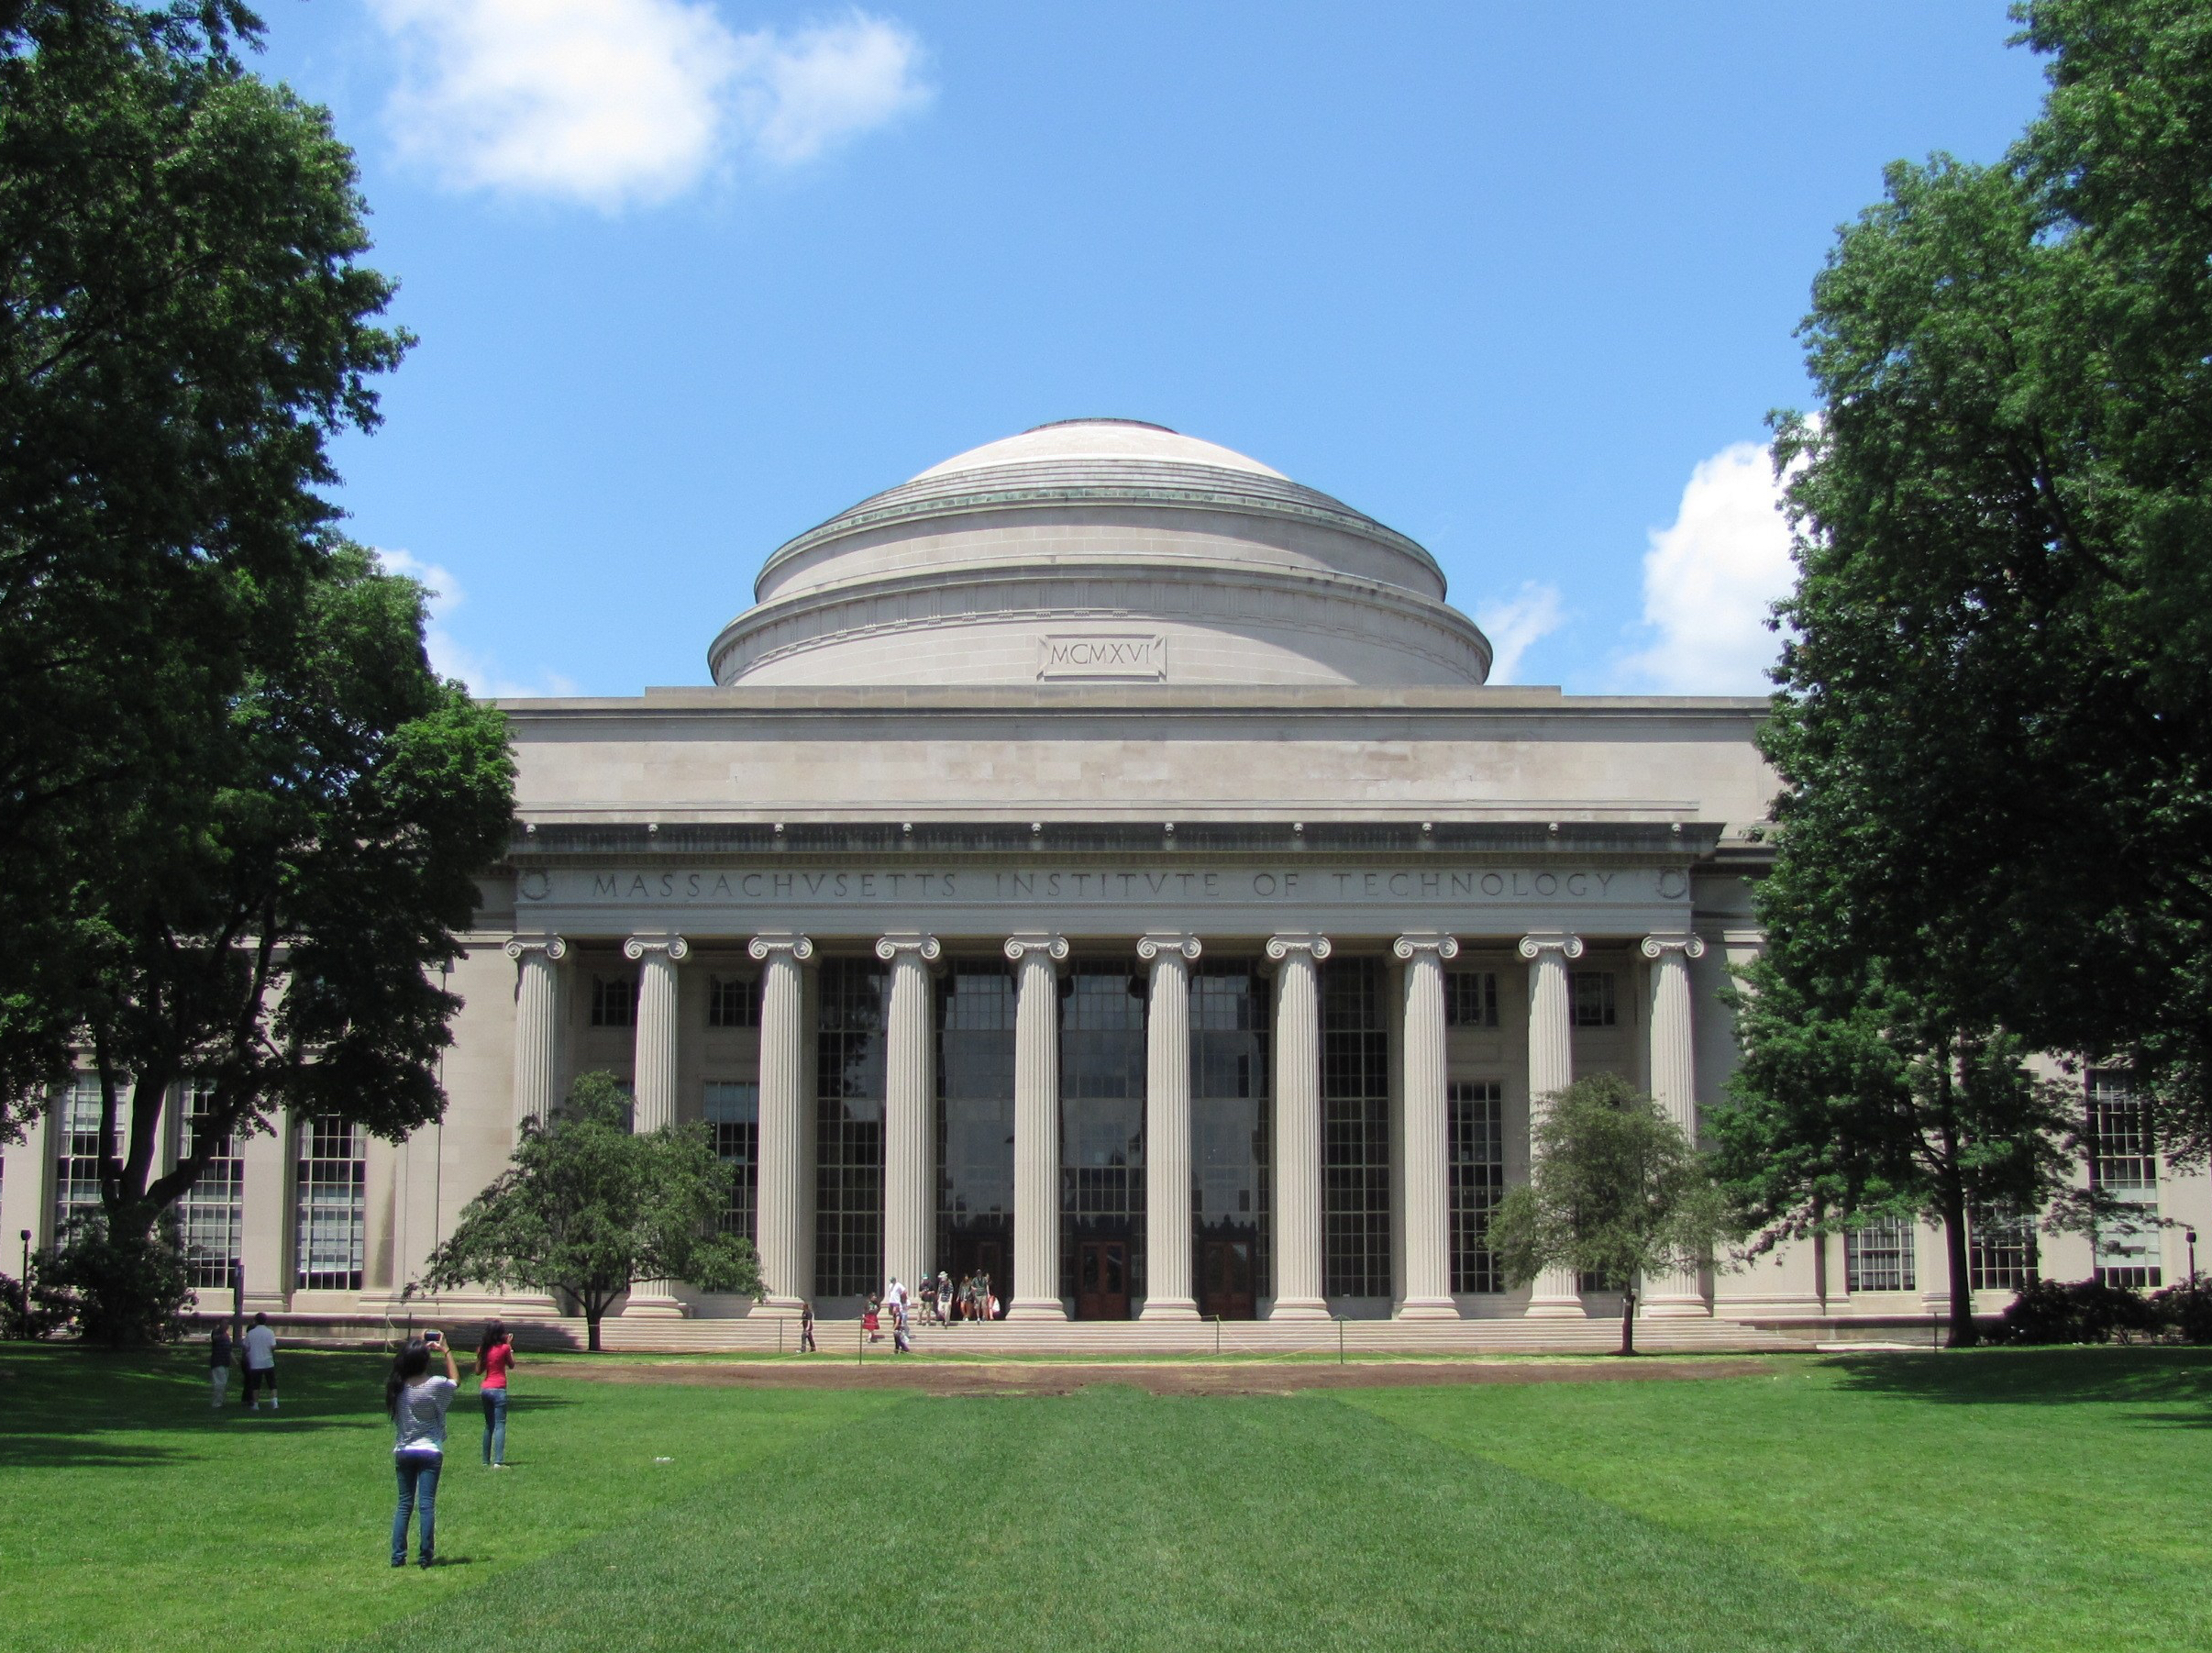 mit_building_10_and_the_great_dome_cambridge_ma-e1513795152748.jpg